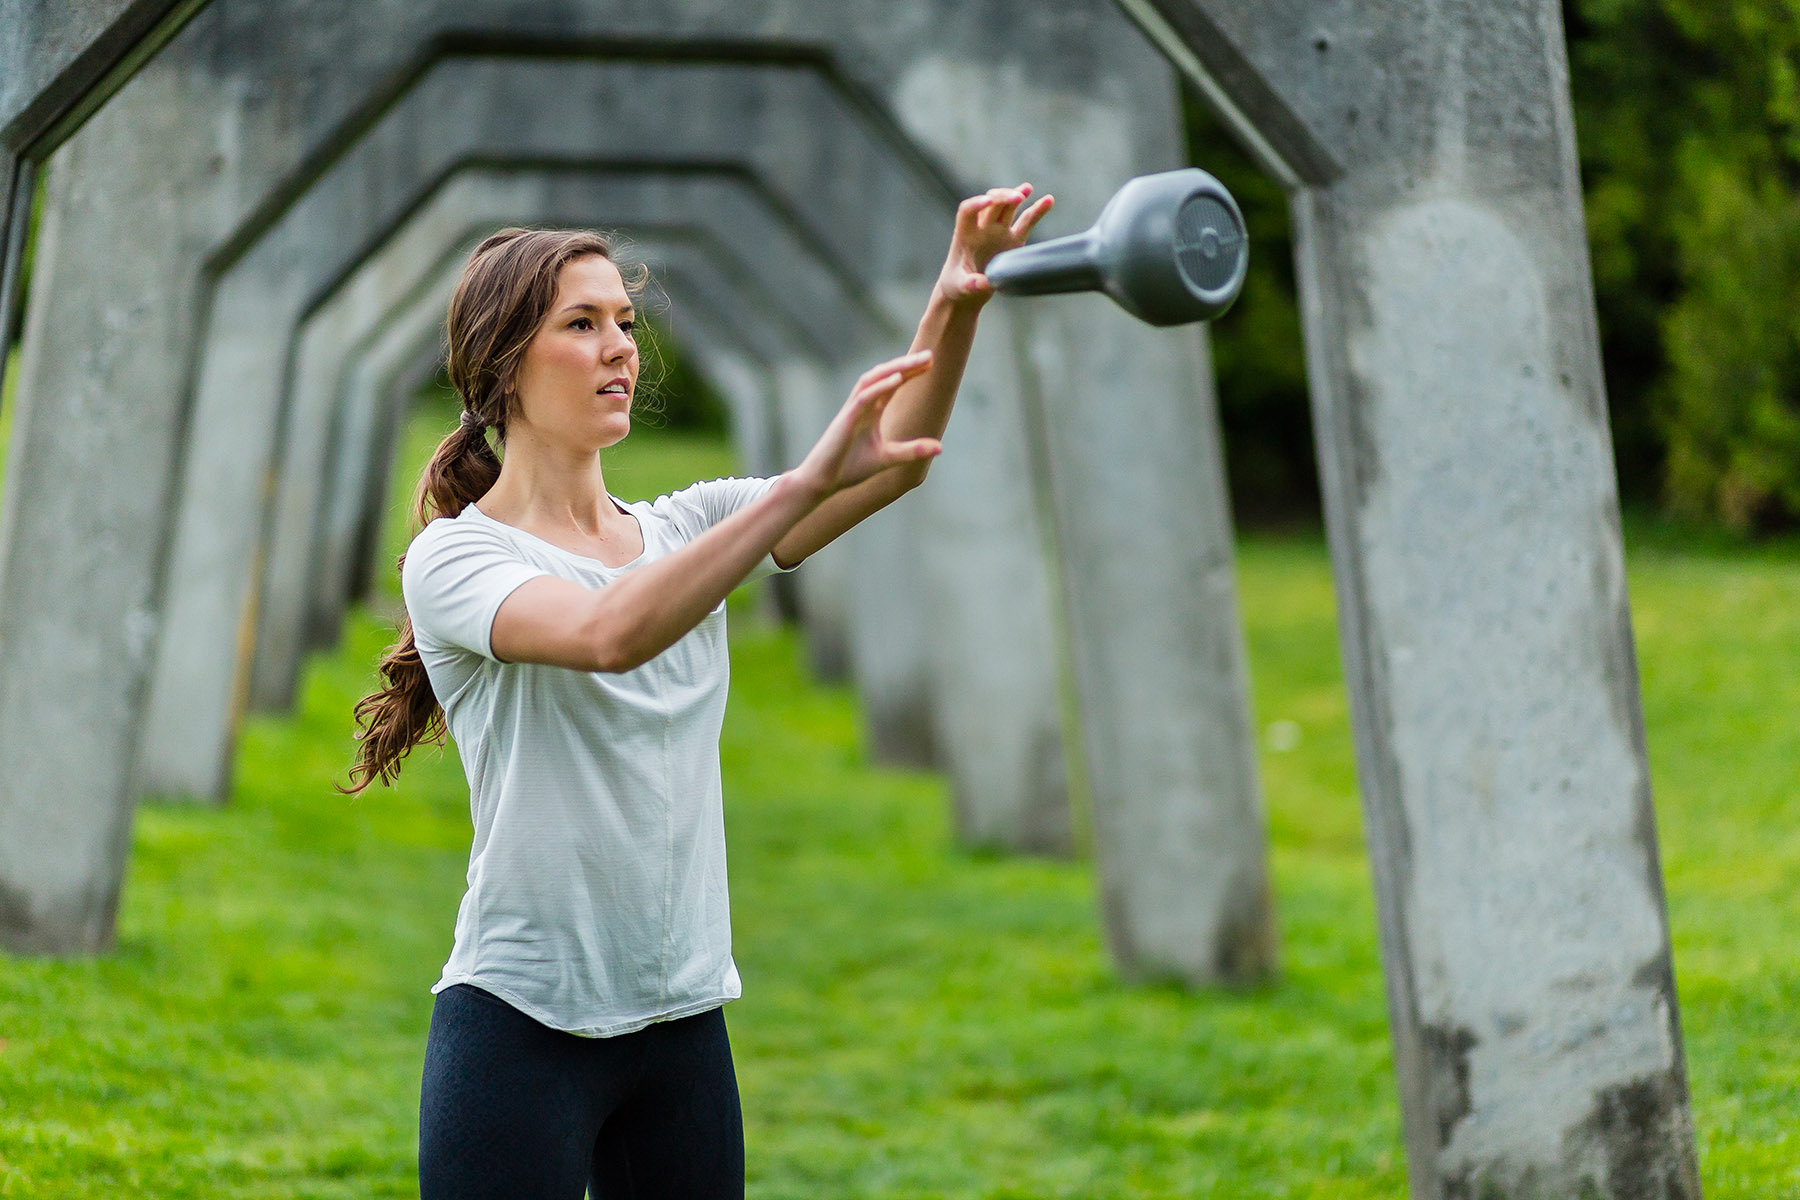 Fitness: Mary Little exercising with a kettle bell at Gas Works Park, Seattle, Washington